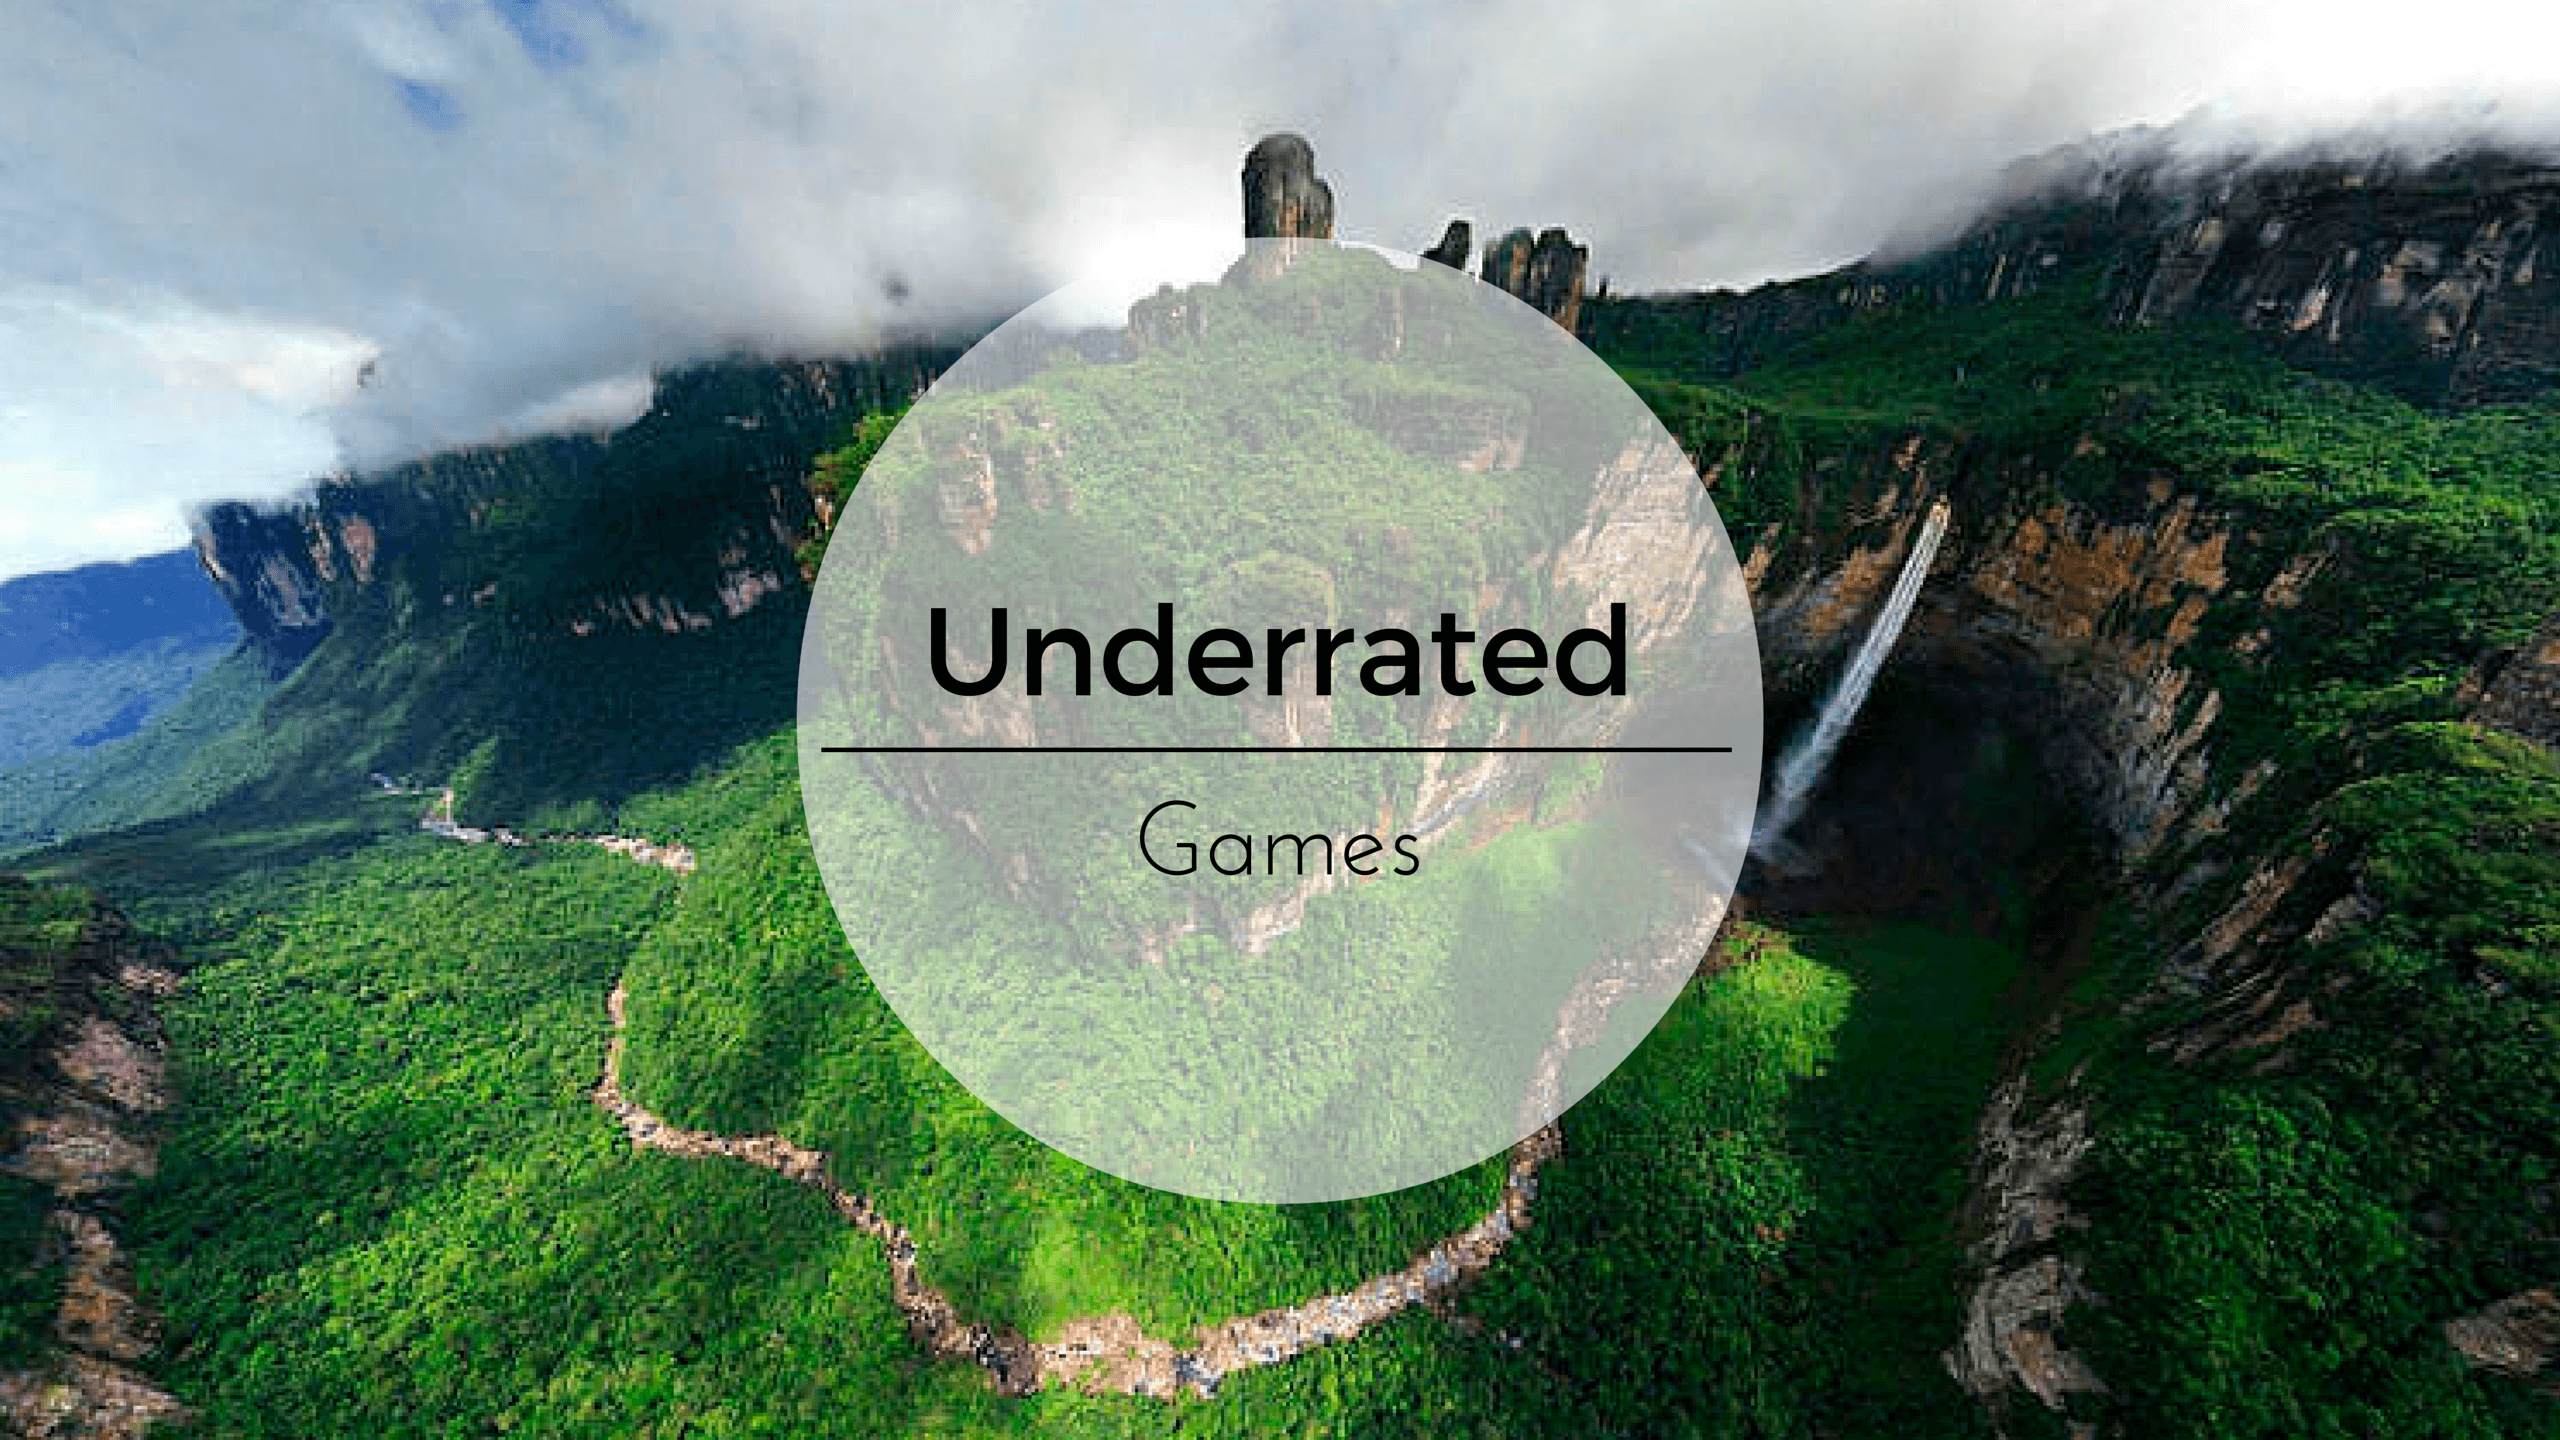 Underrated games